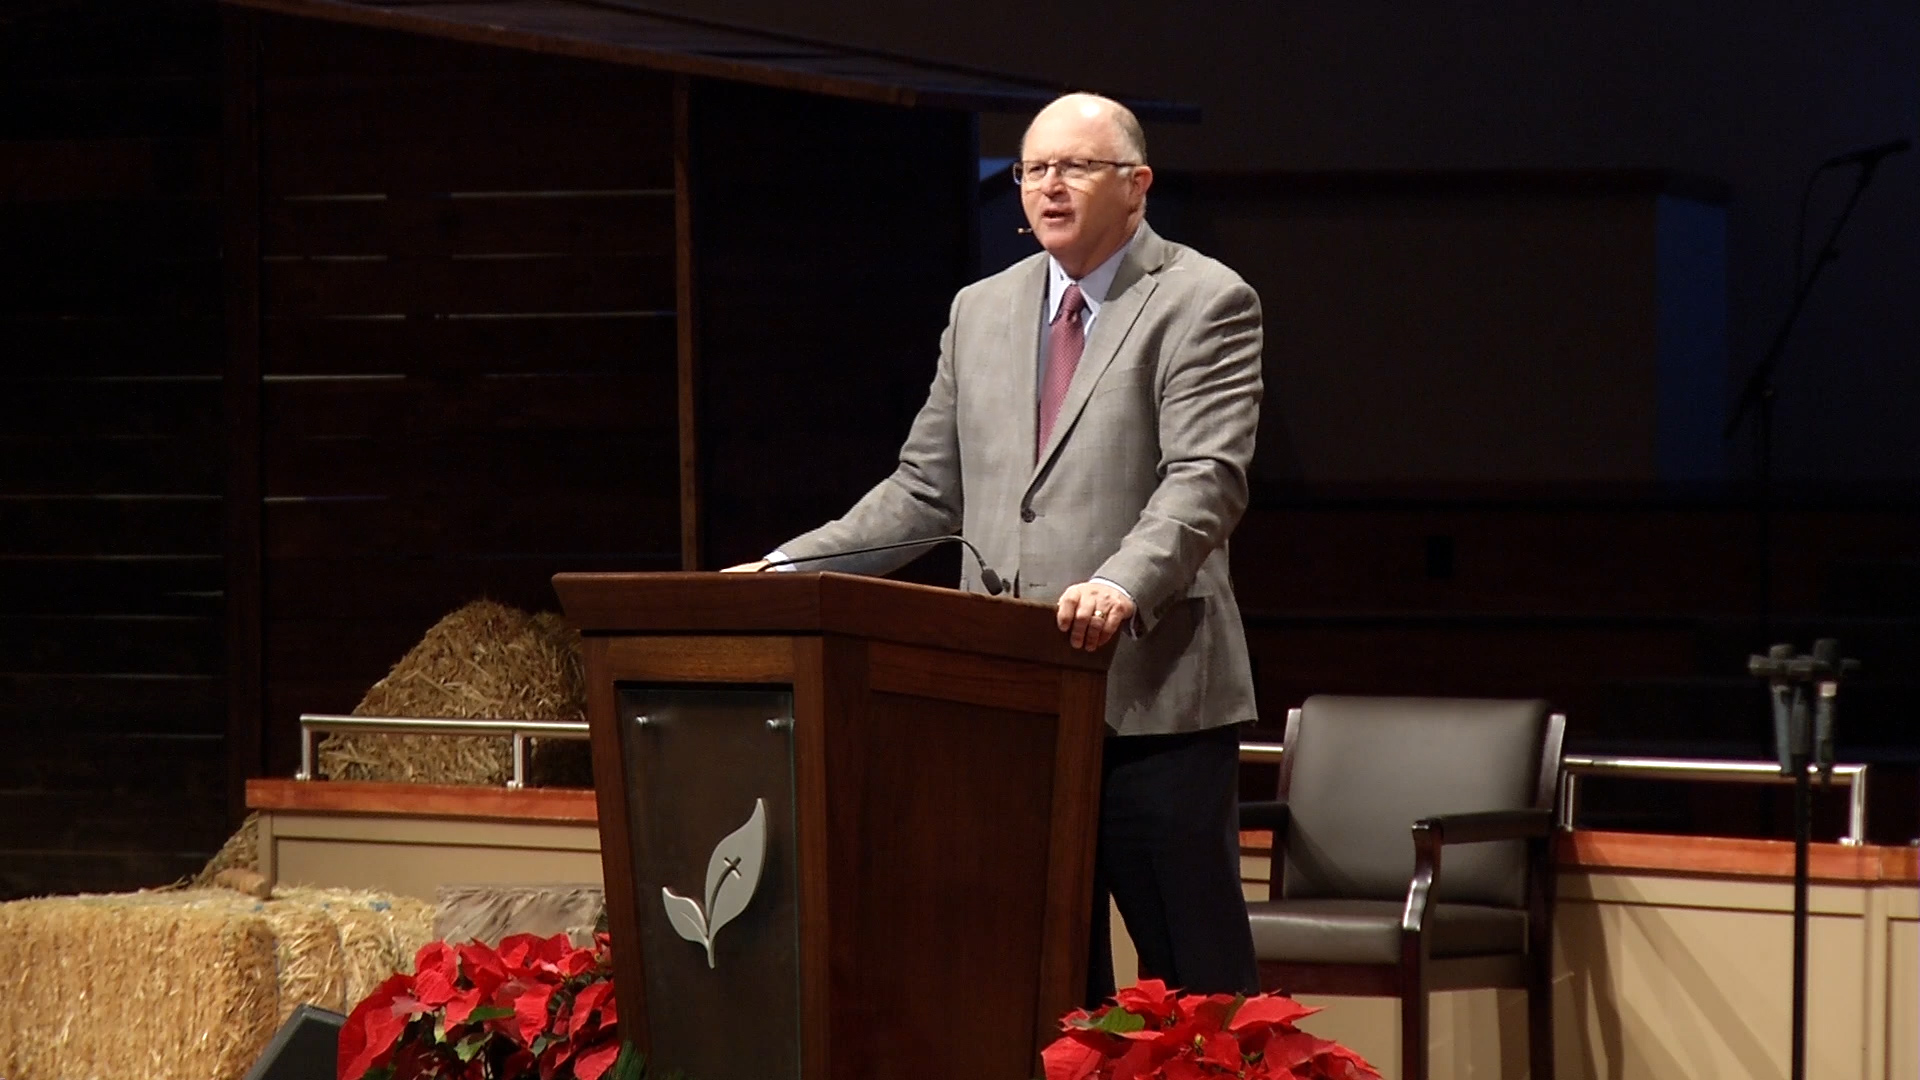 Pastor Paul Chappell: The Curse of Christmas